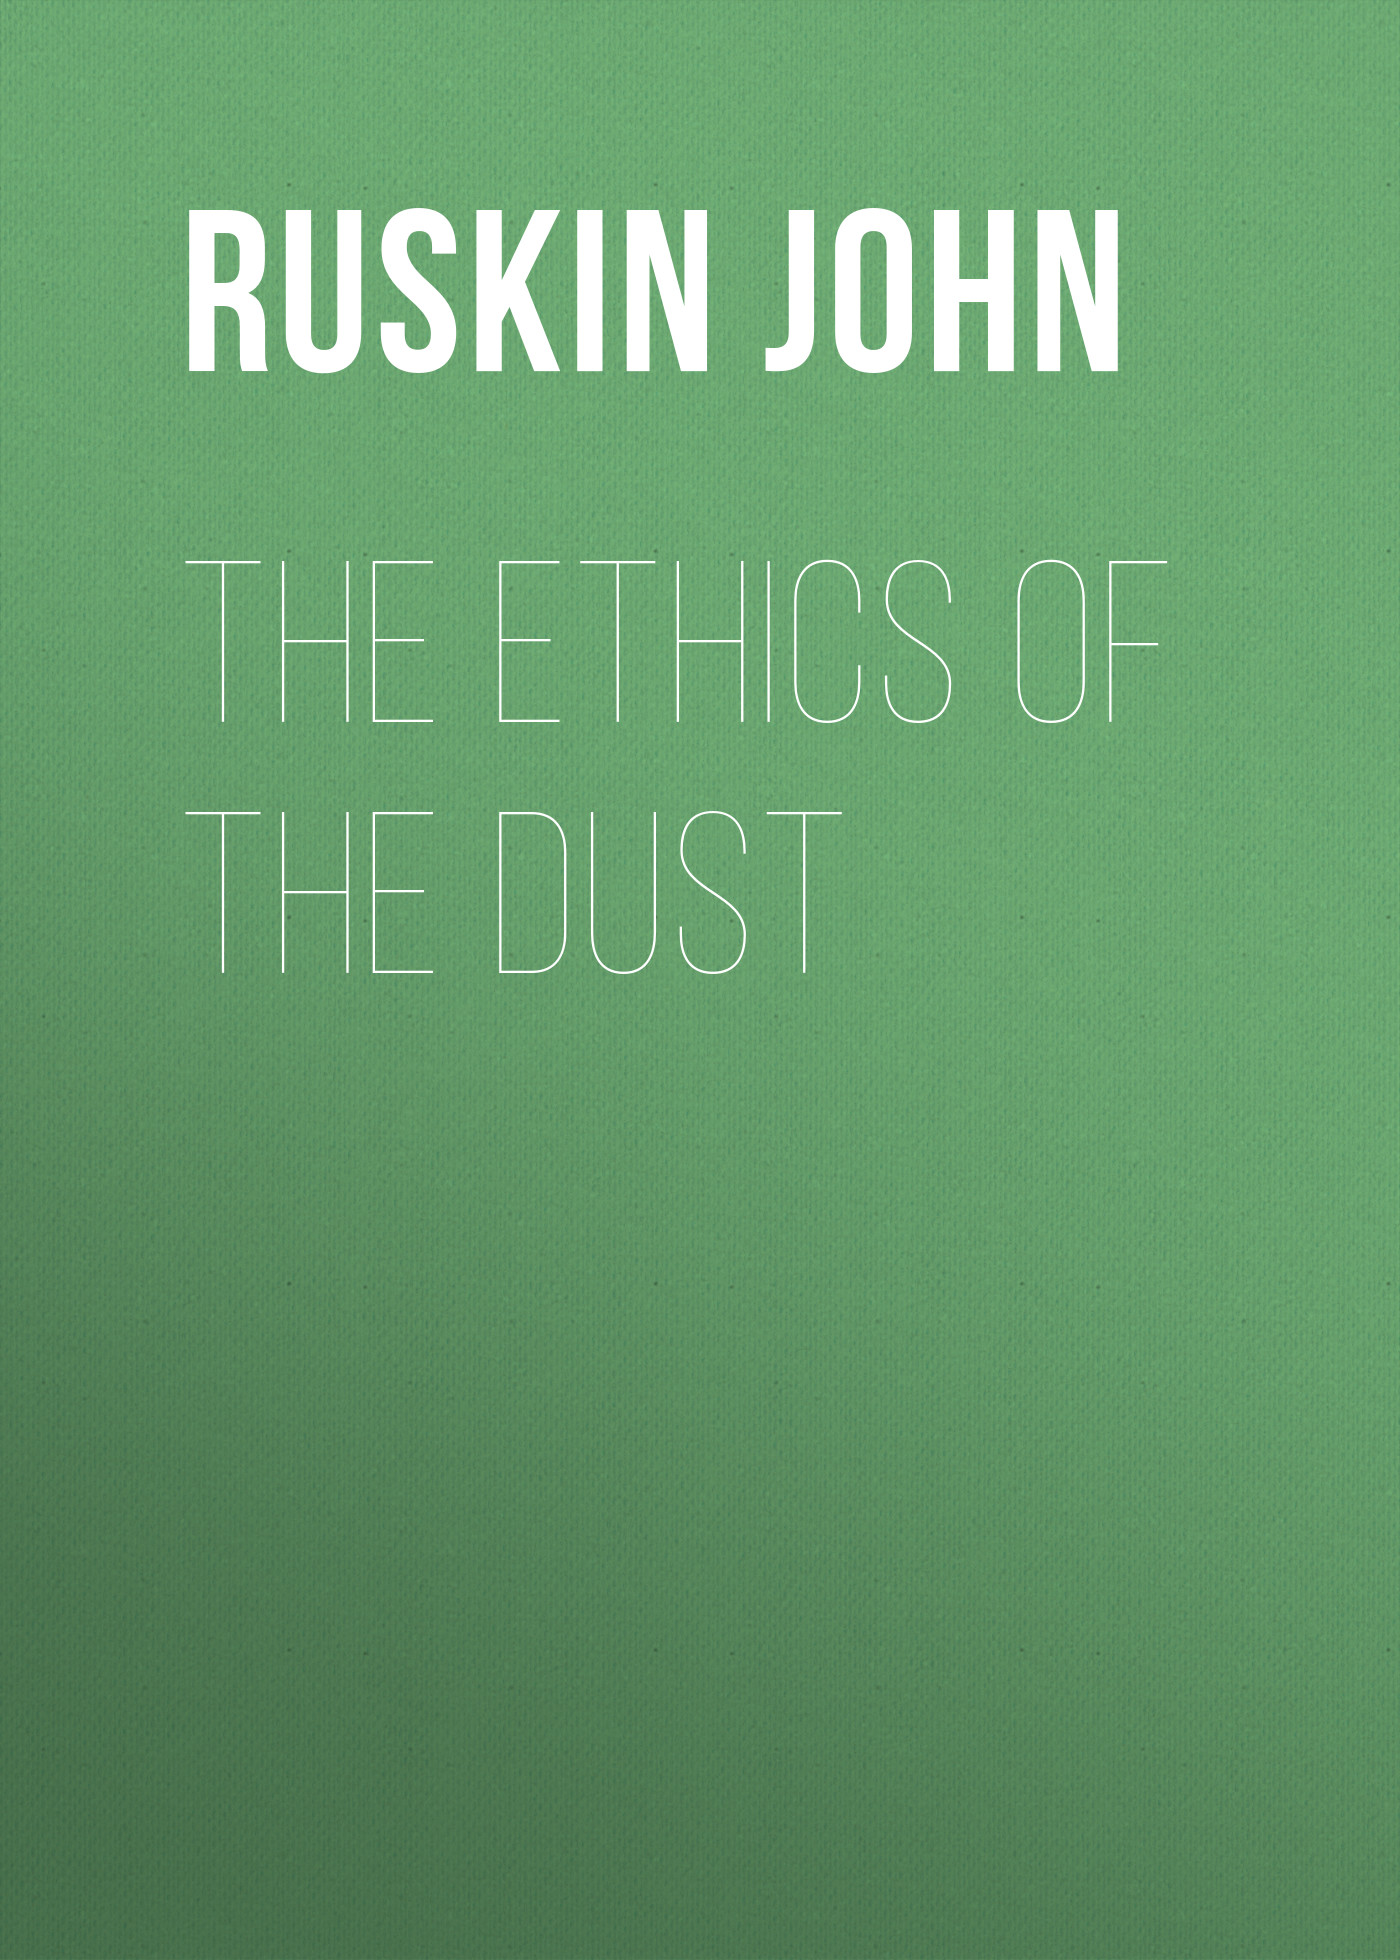 Ruskin John The Ethics of the Dust the question of ethics paper